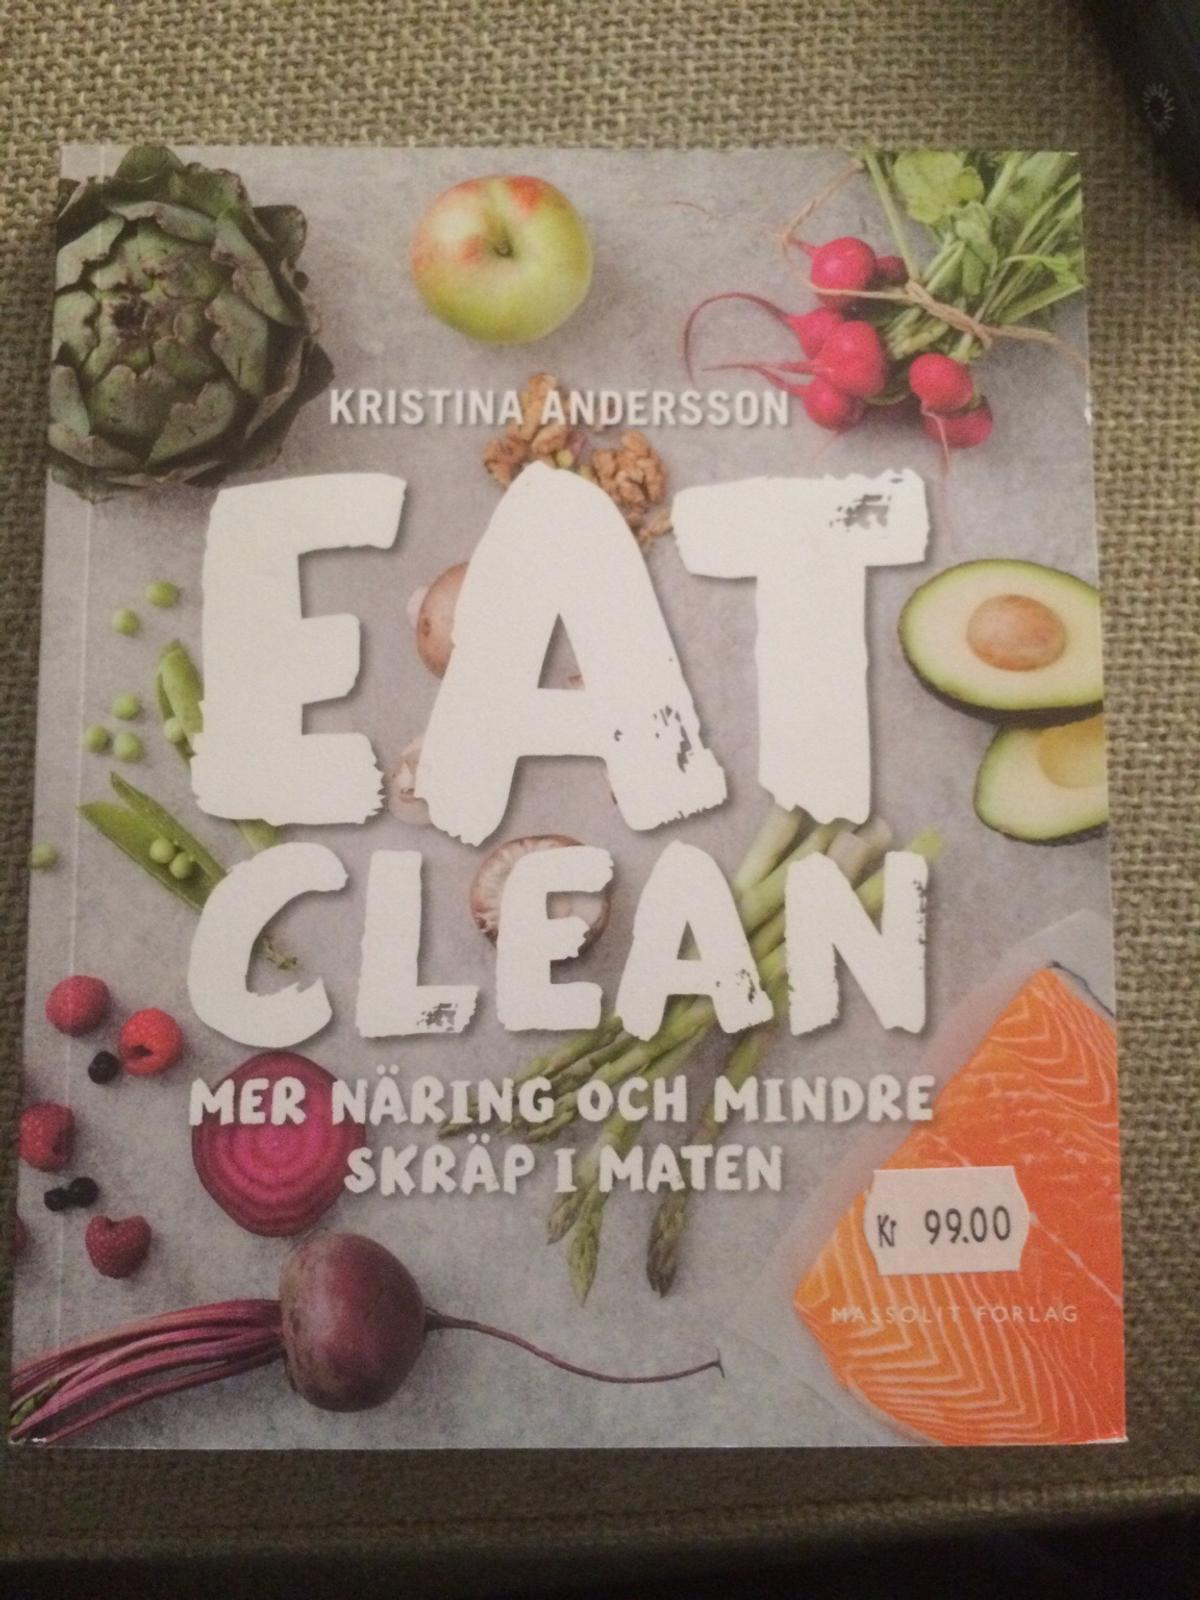 eat clean kristina andersson recept